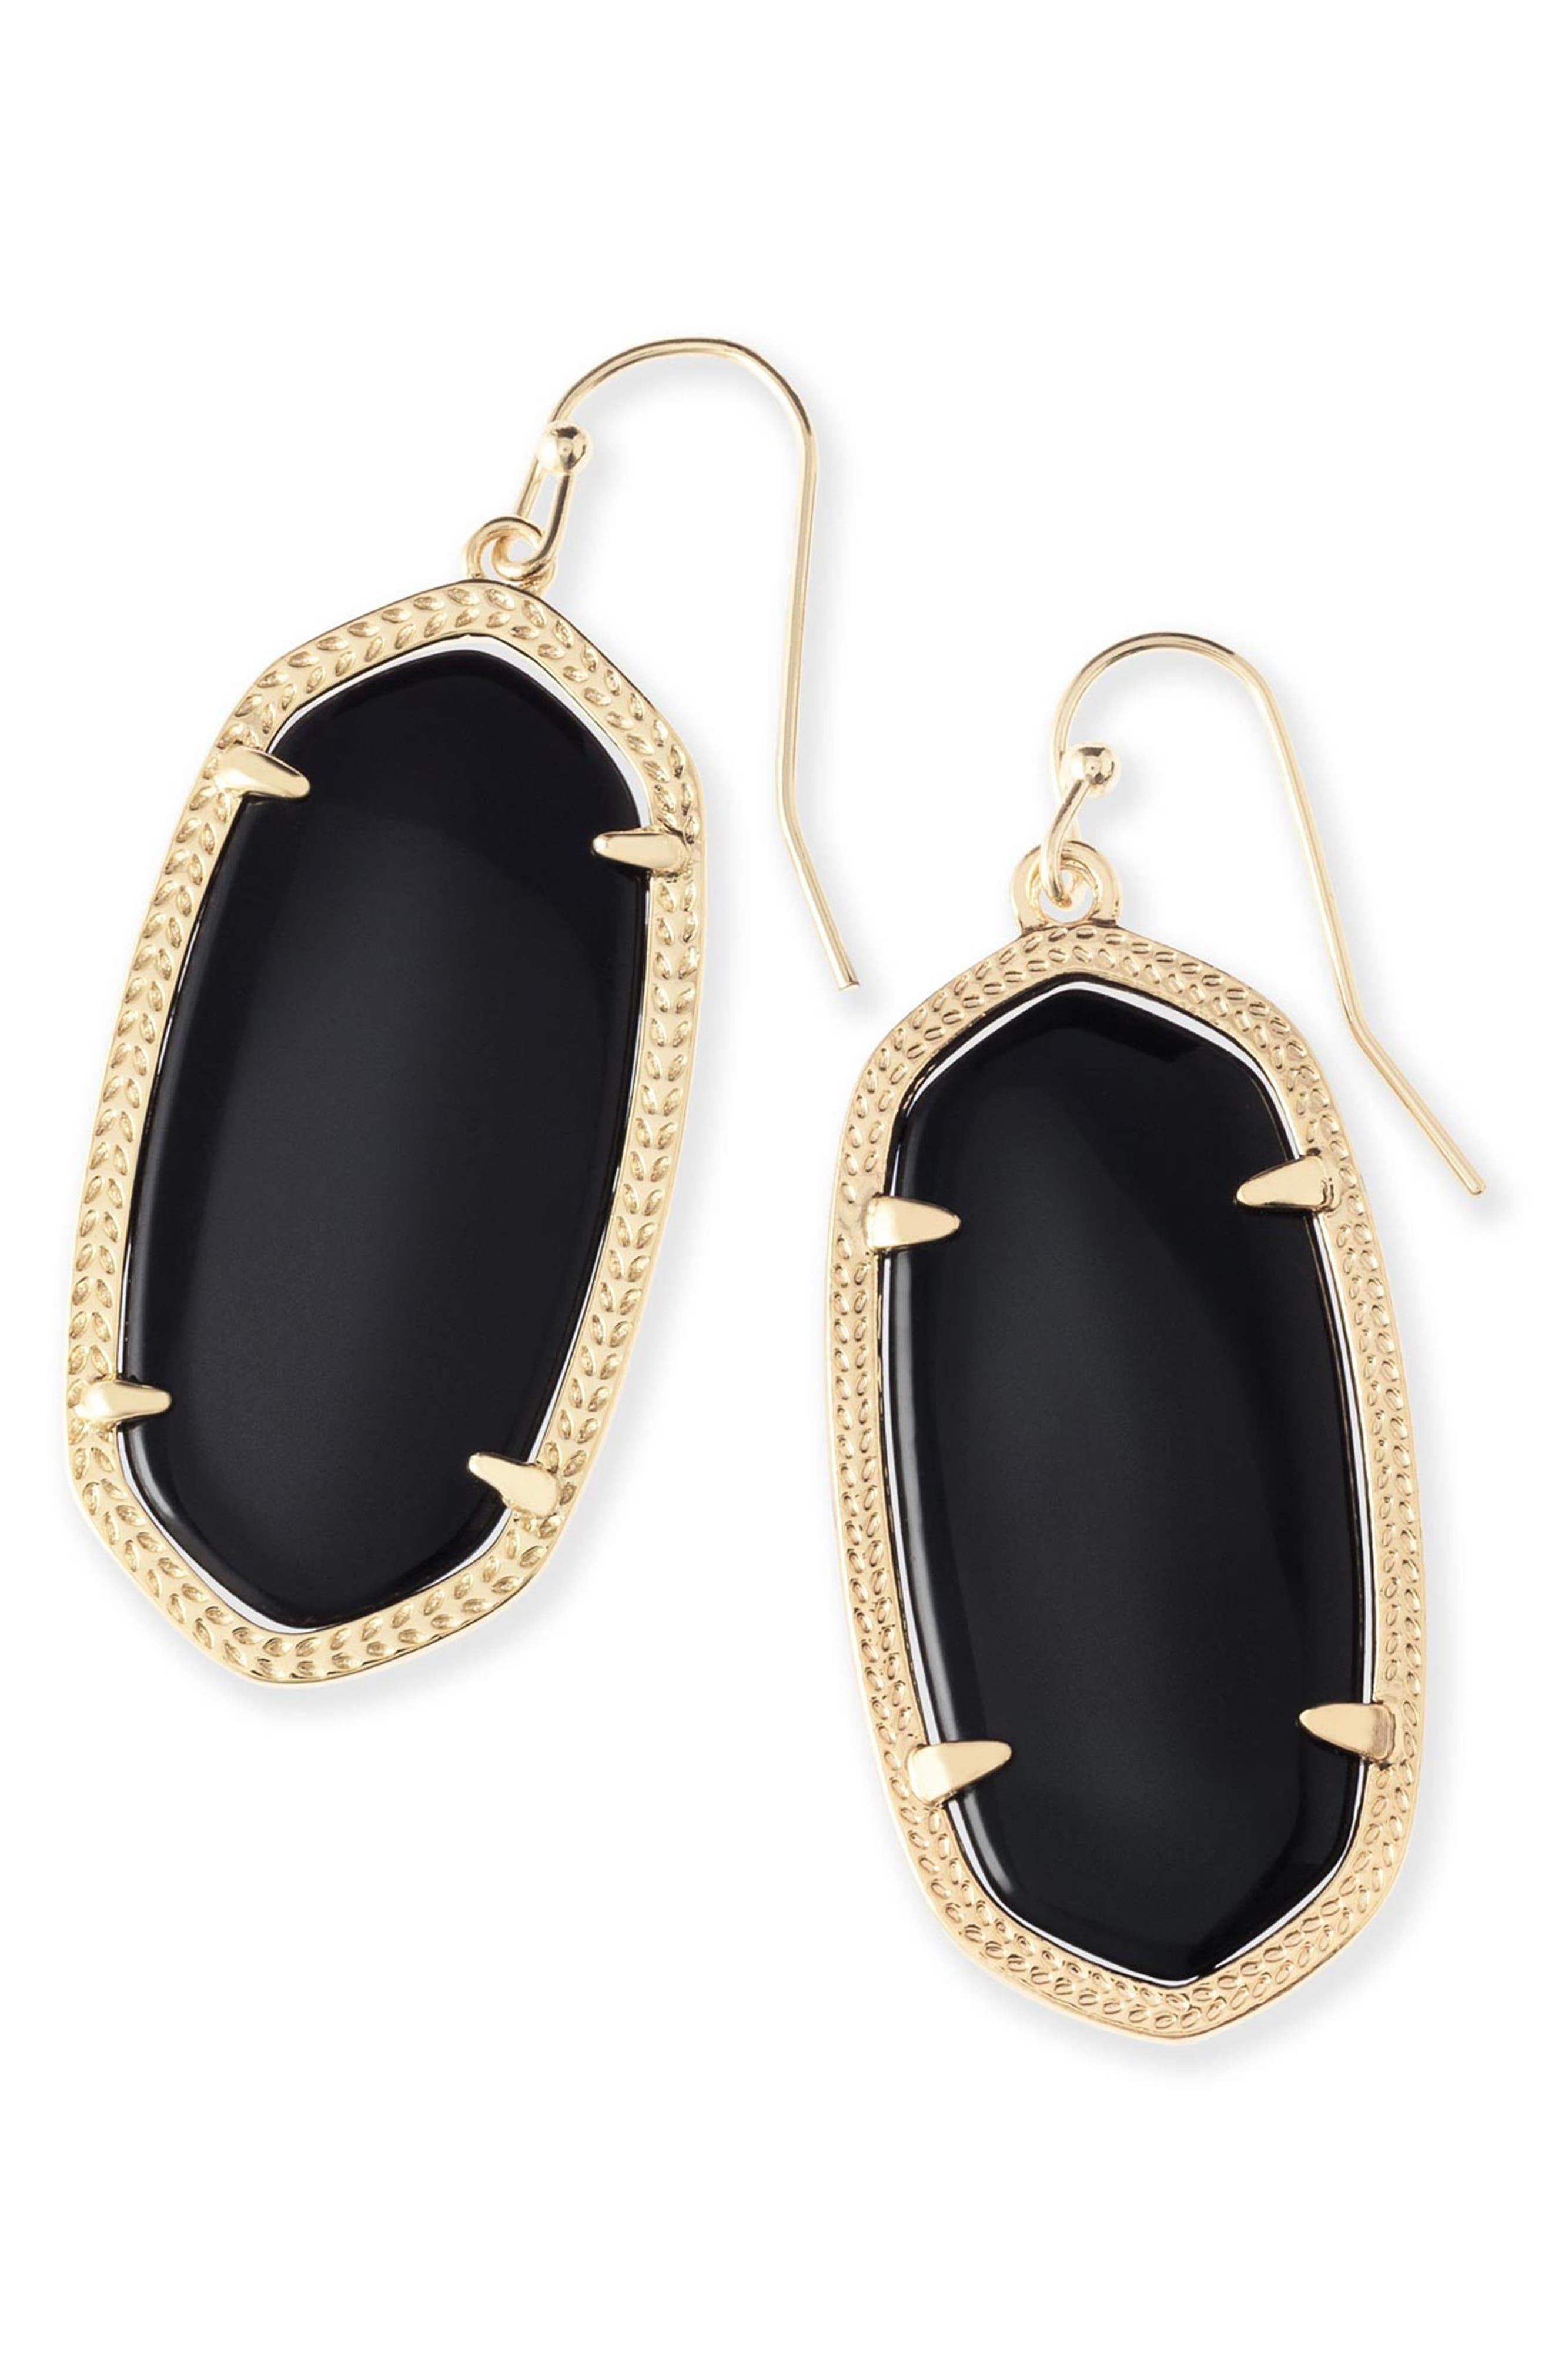 KENDRA SCOTT, Elle Filigree Drop Earrings, Main thumbnail 1, color, BLACK/ GOLD